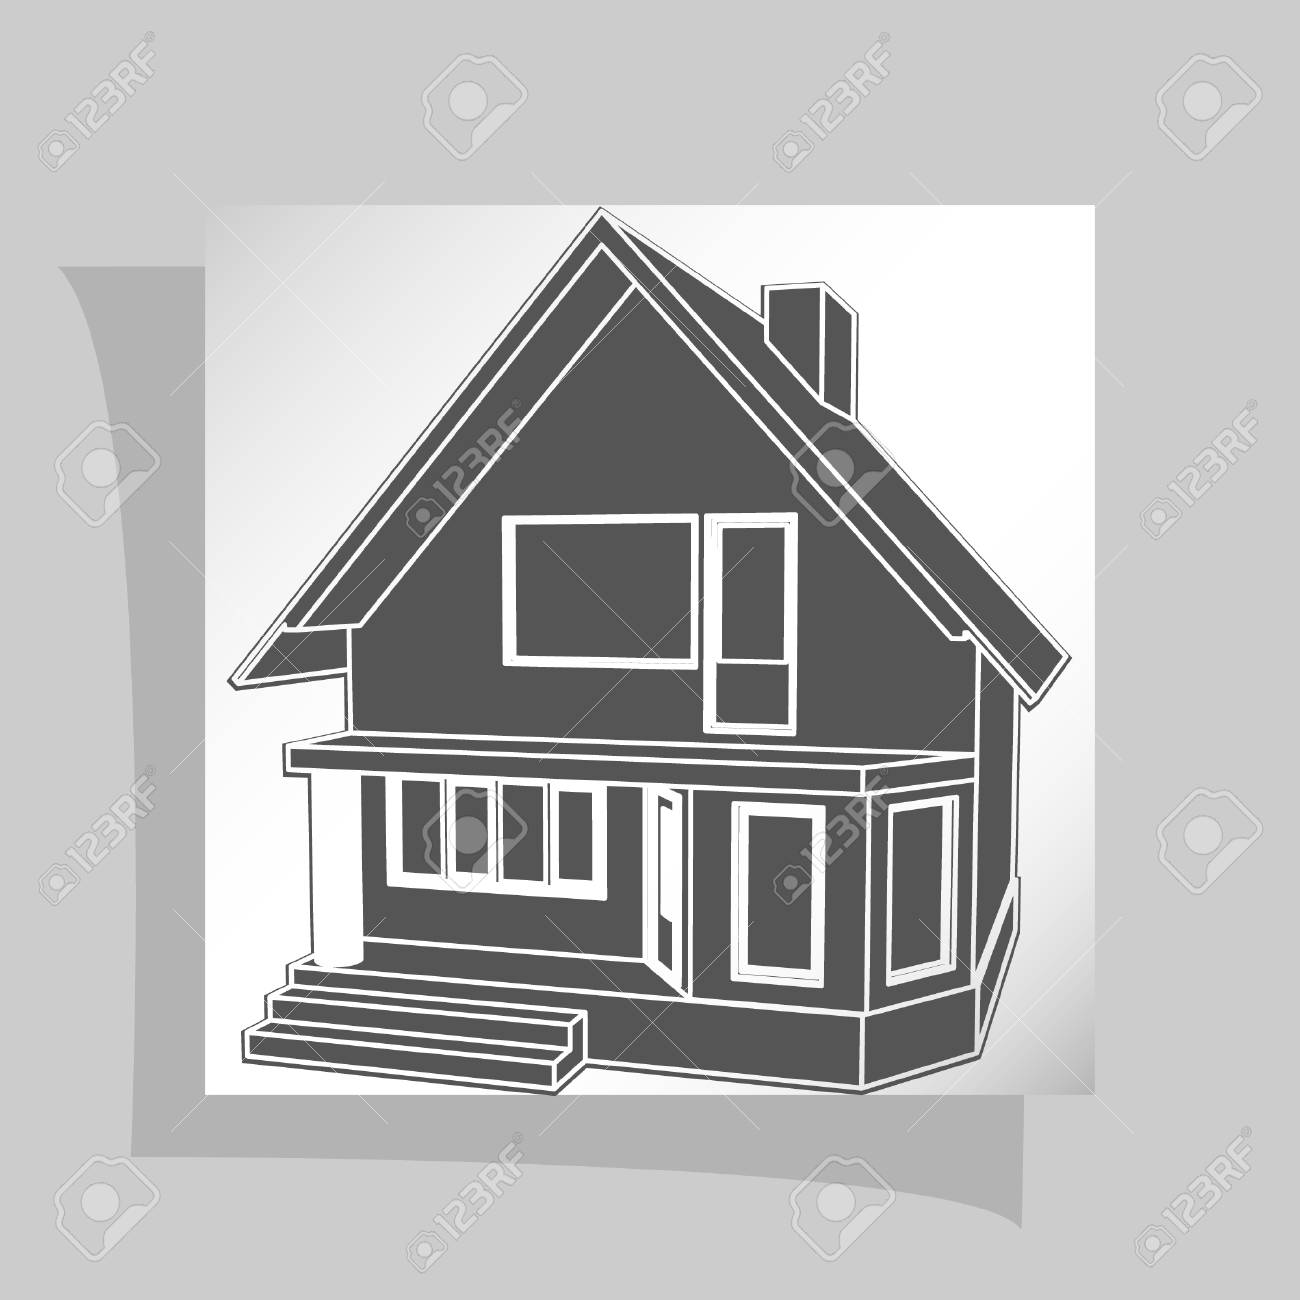 Building Perspective 3D. Drawing Of The Suburban House. House 3D Model  Perspective Vector Stock